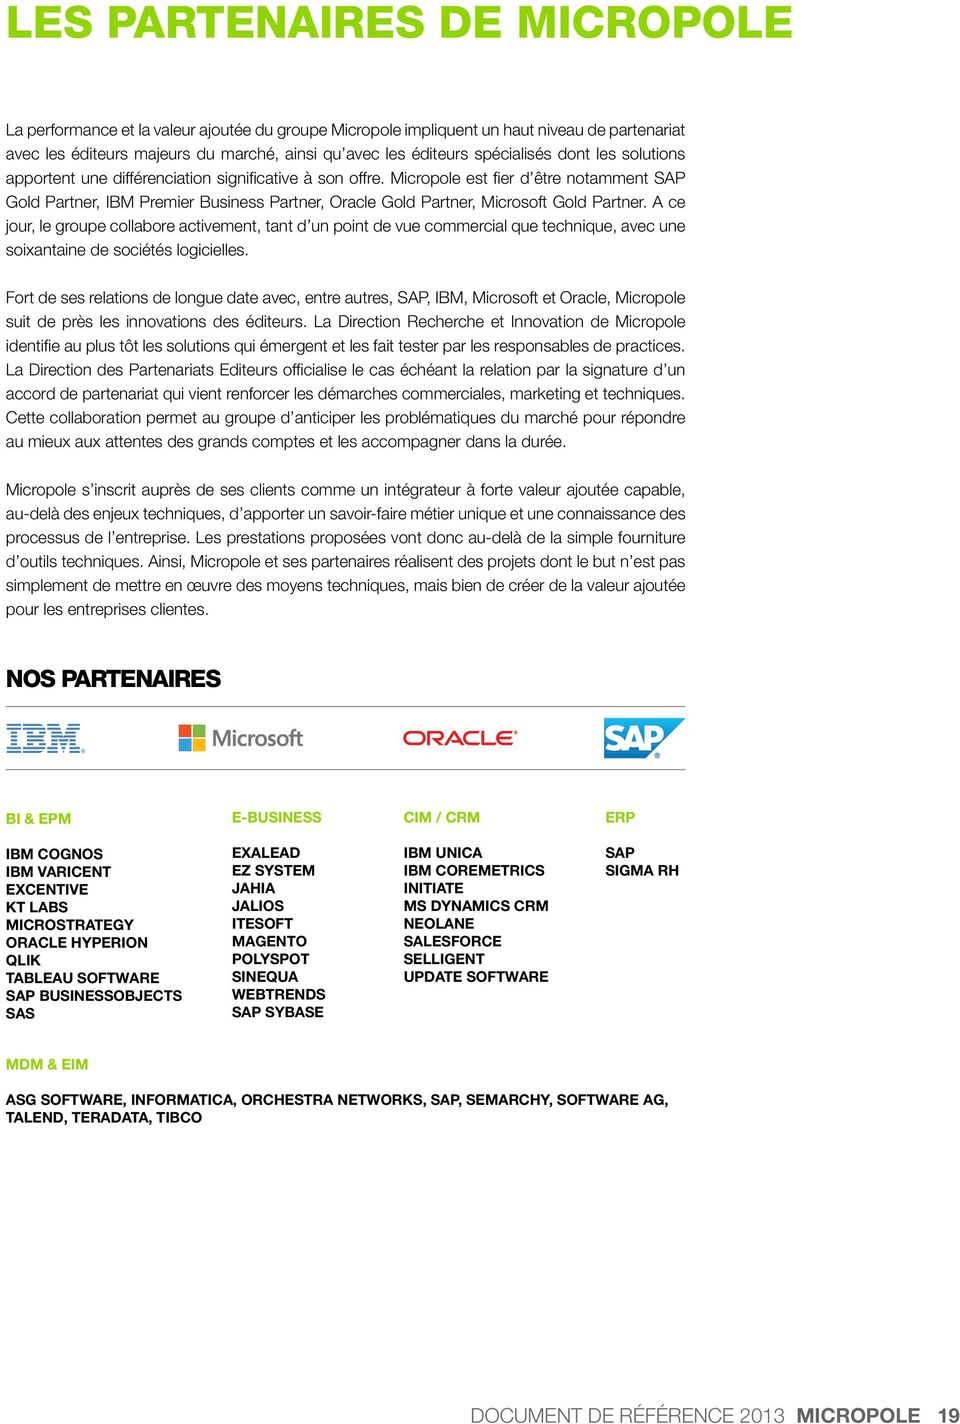 Micropole est fier d être notamment SAP Gold Partner, IBM Premier Business Partner, Oracle Gold Partner, Microsoft Gold Partner.